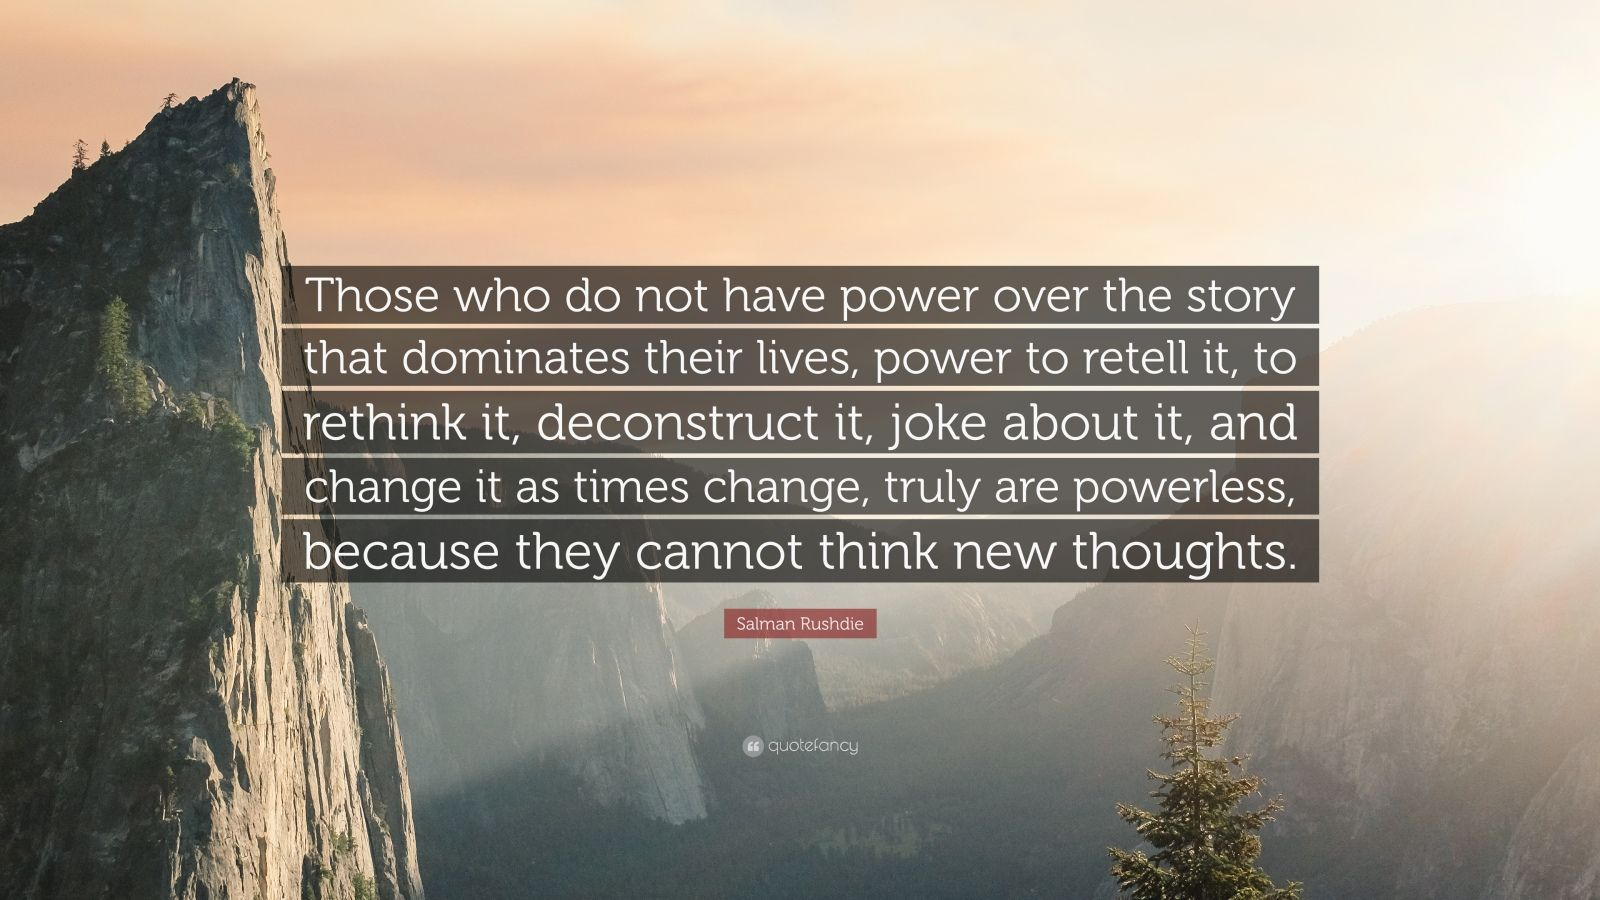 """Salman Rushdie Quote: """"Those who do not have power over the story that dominates their lives, power to retell it, to rethink it, deconstruct it, joke about it, and change it as times change, truly are powerless, because they cannot think new thoughts."""""""